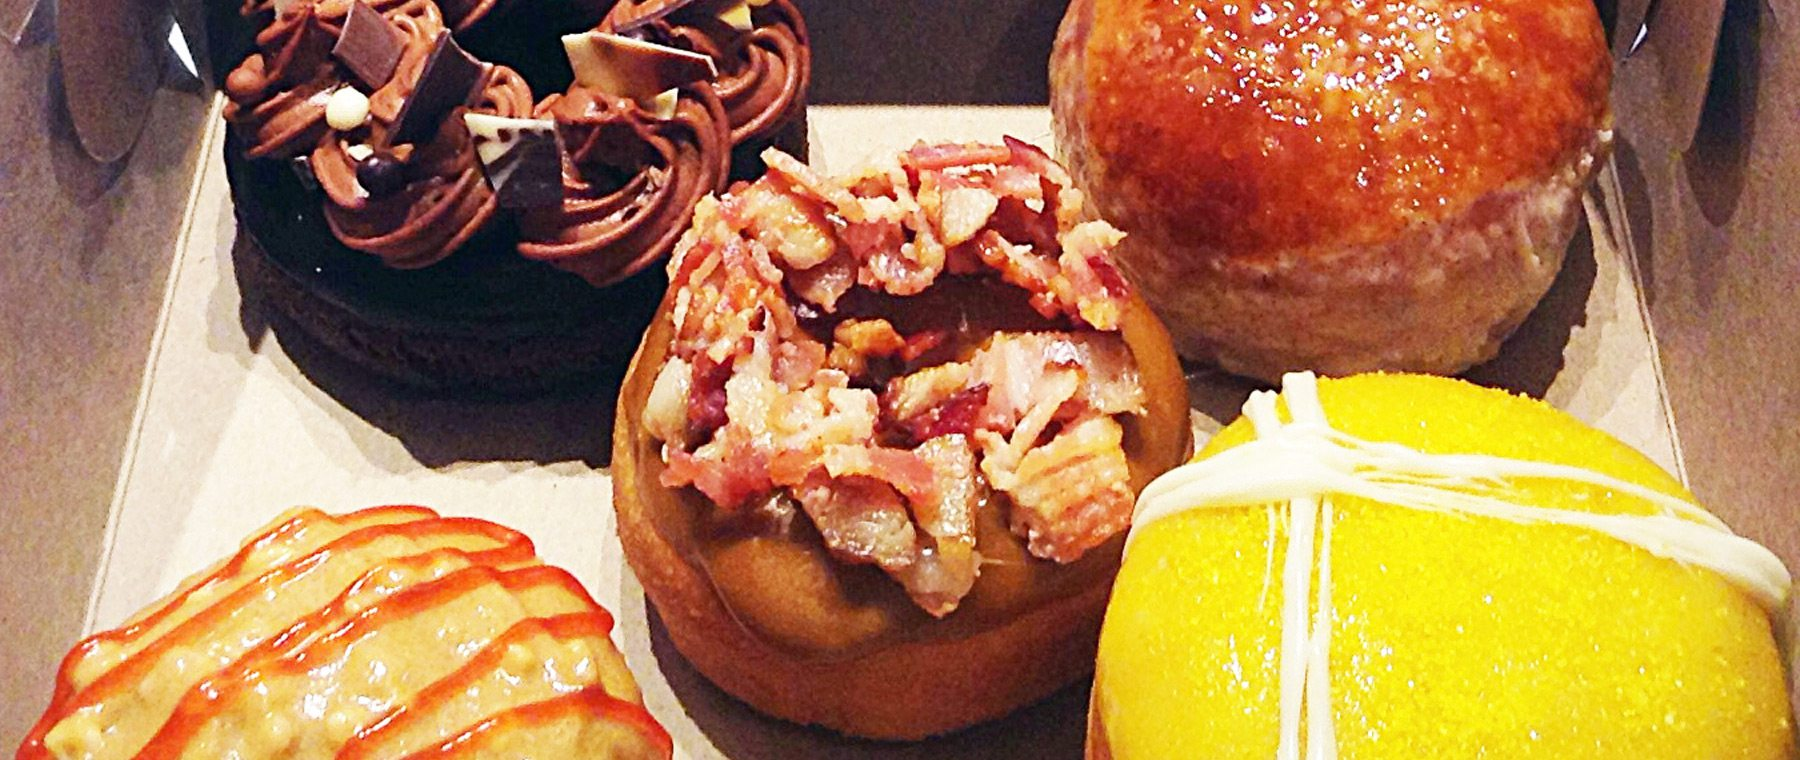 Make-your-own donuts? You bet, at the new Maverick's Donut Company shop!